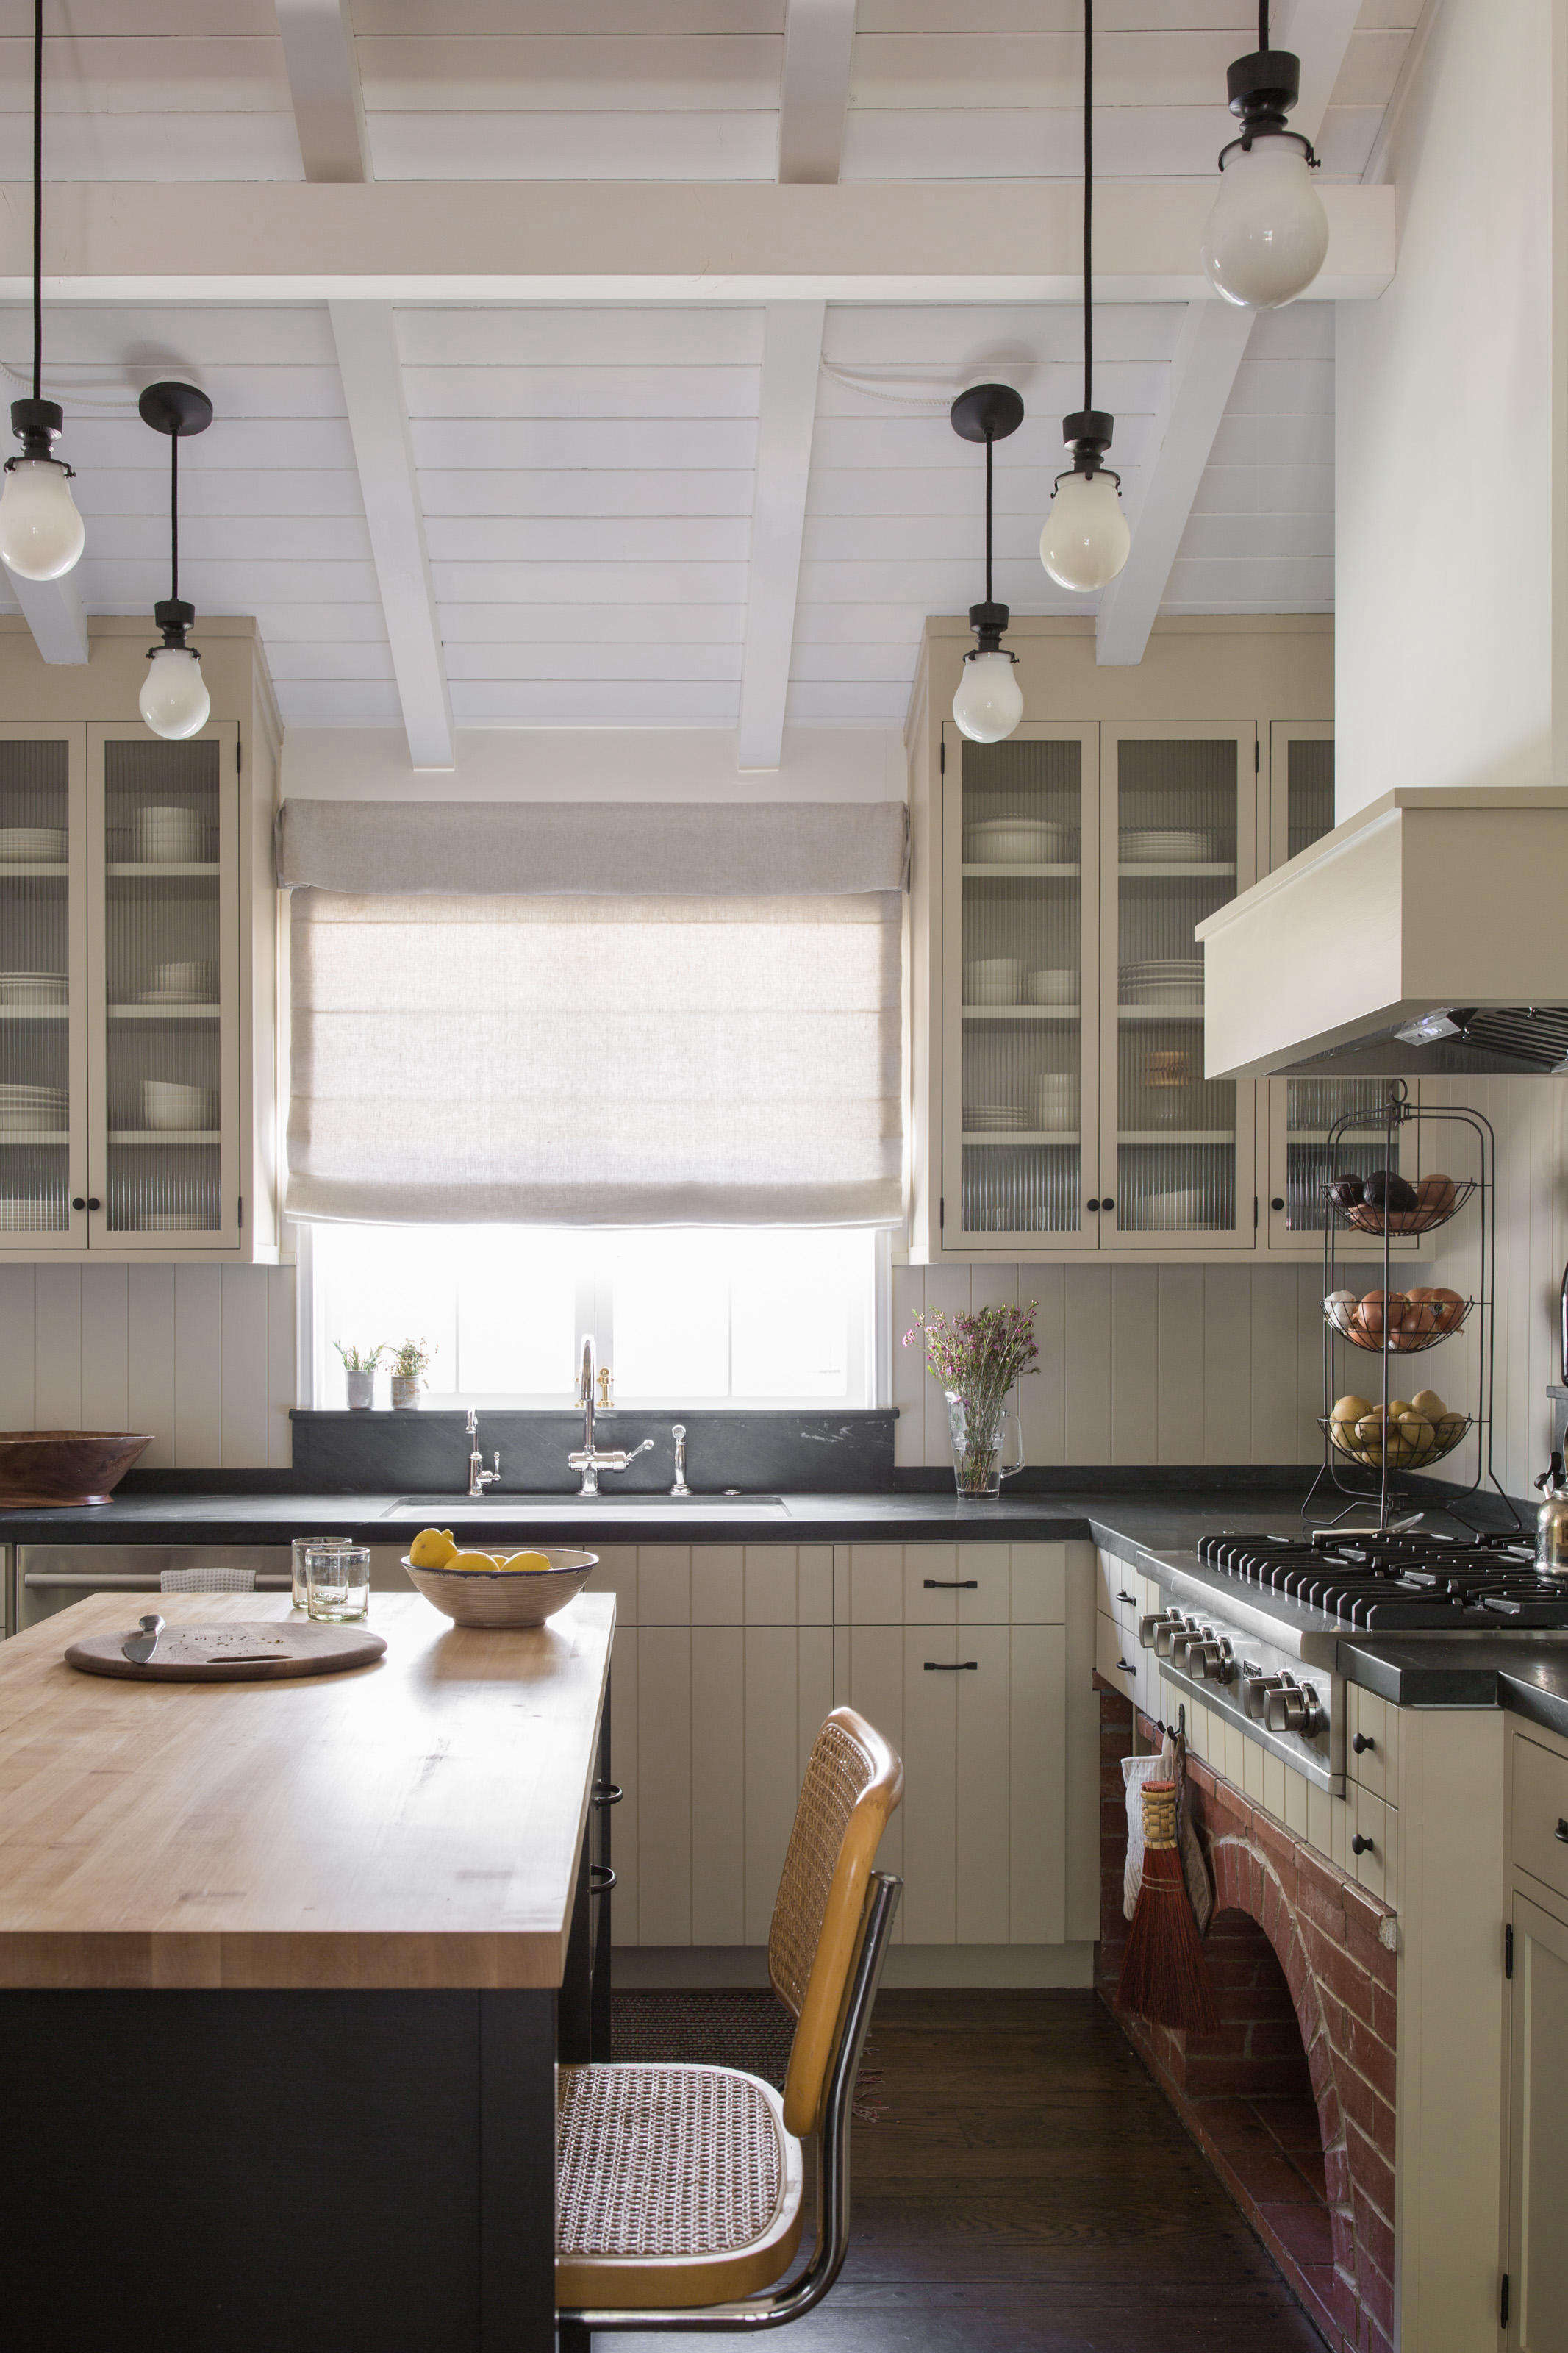 Merveilleux Kitchen Of The Week: An Architect Designer Coupleu0027s Own Cottage Kitchen In  Los Feliz